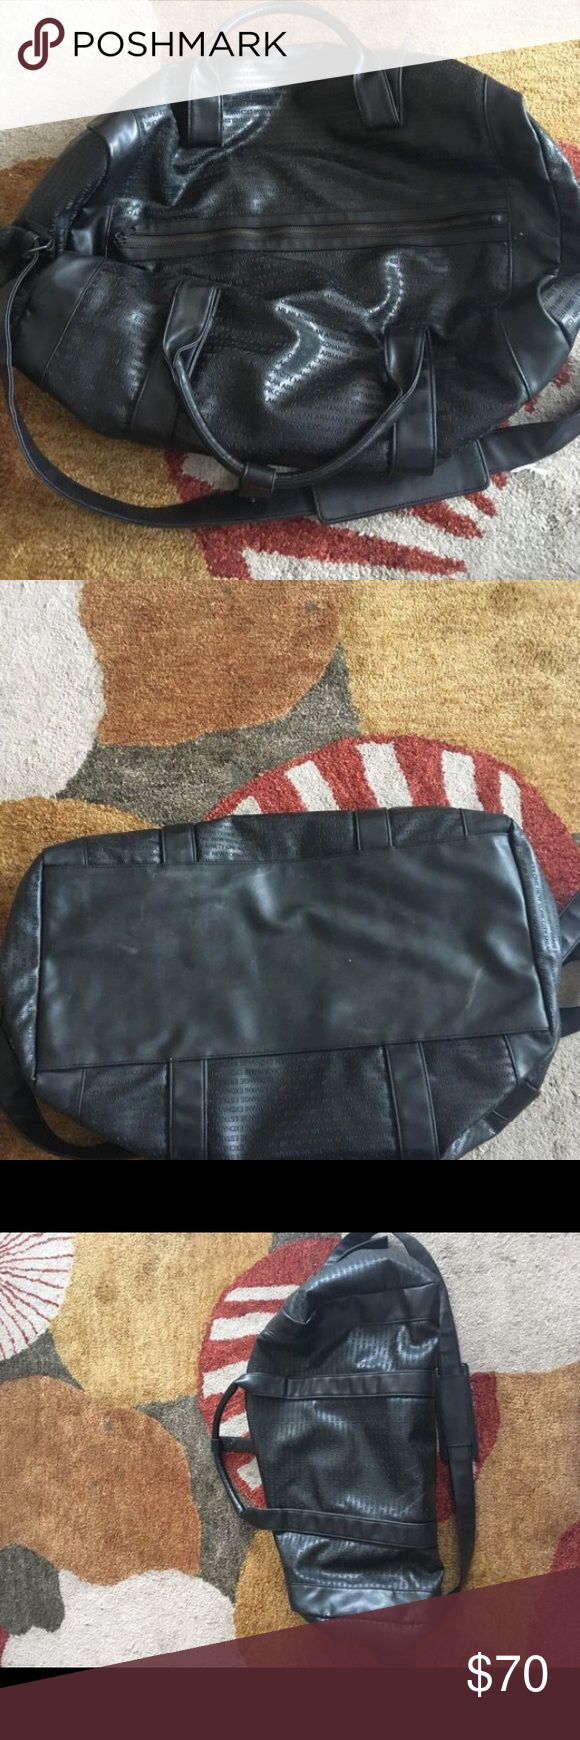 Armani Exchange Black Duffle Bag. In amazing condition black Armani Exchange duffle bag with shoulder strap. 100 percent vegan leather. Styled with Armani Exchange Established Nineteen NinetyOne across the bag. Classic and sporty and great for anything. A/X Armani Exchange Bags Duffel Bags